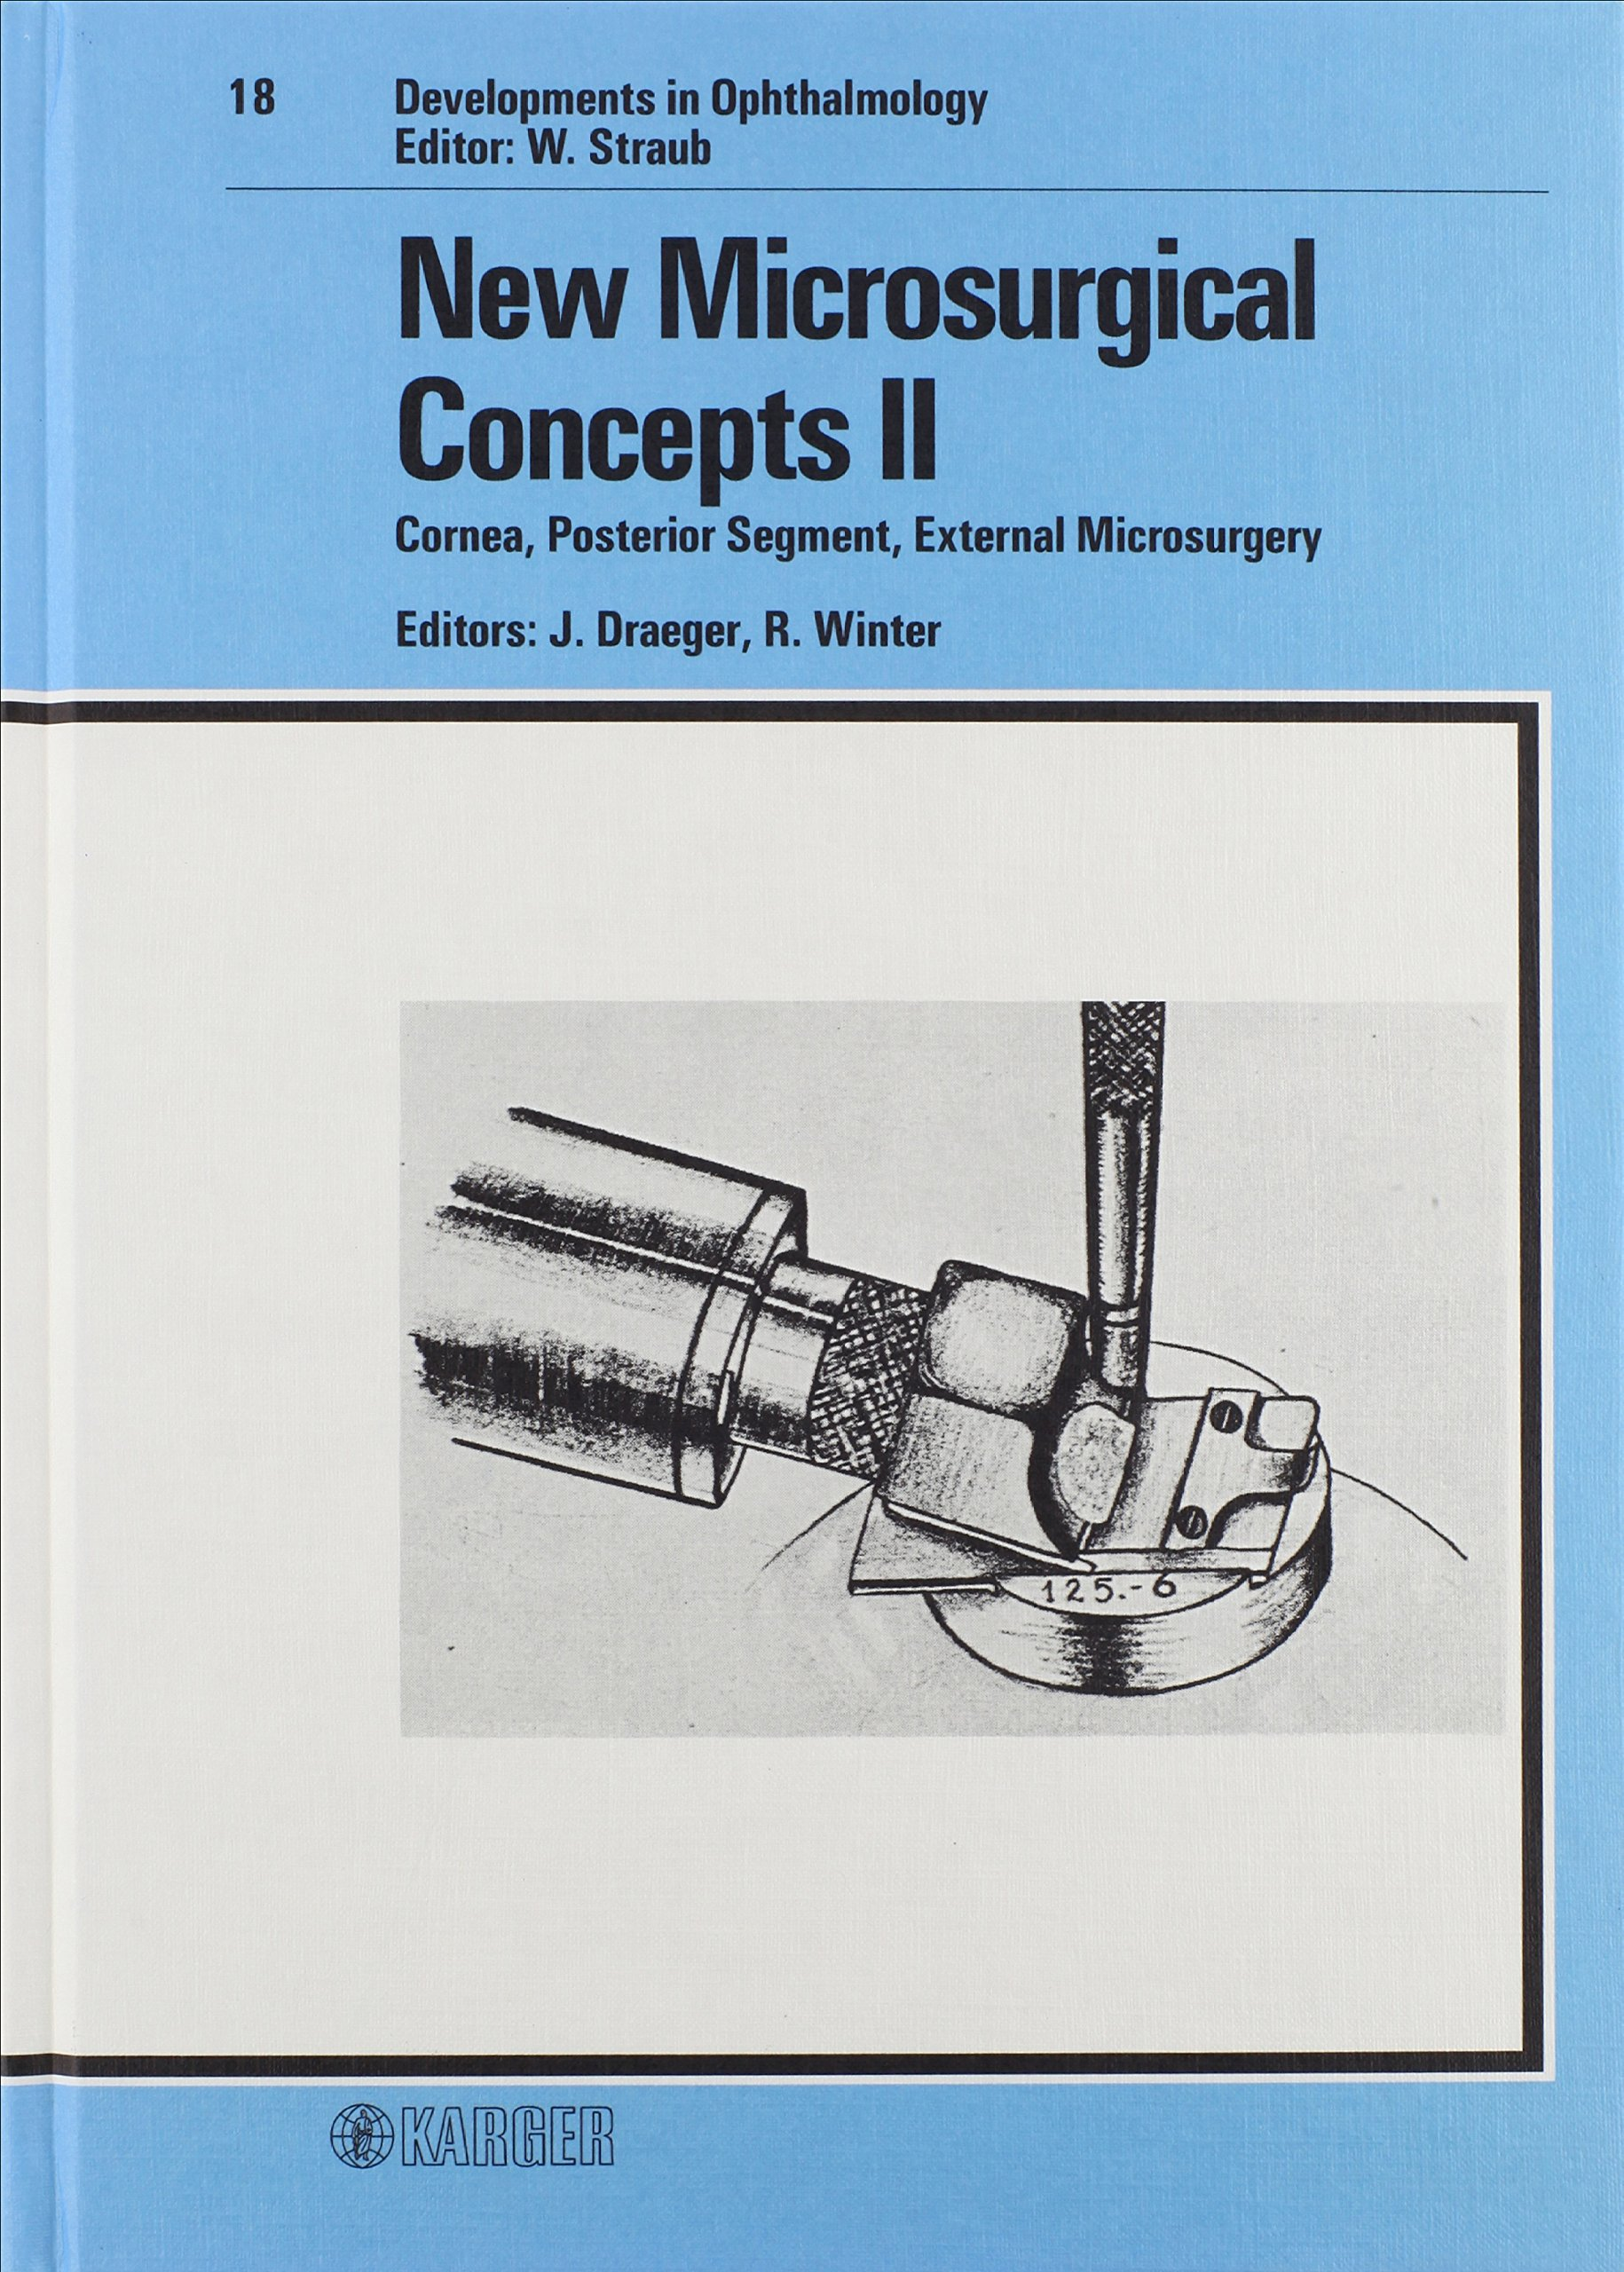 New Microsurgical Concepts II: Cornea, Posterior Segment, External Microsurgery International Ophthalmic Microsurgery Study Group, Funchal/Madeira, ... (Developments in Ophthalmology, Vol. 18)